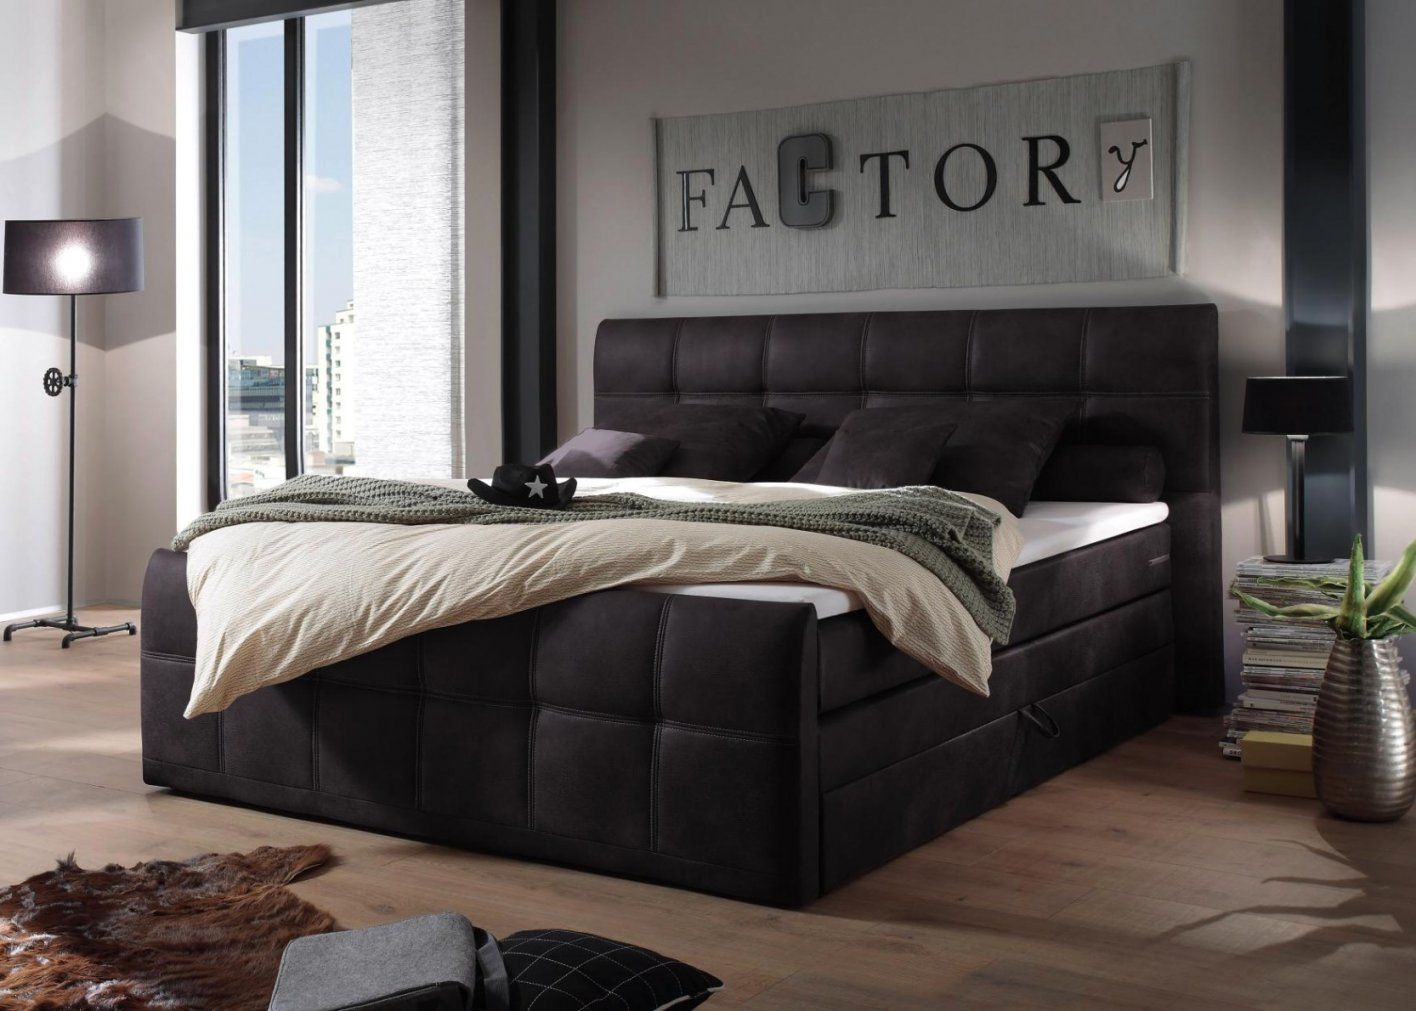 tolle boxspringbett 180 cm x 200 cm in textil anthrazit. Black Bedroom Furniture Sets. Home Design Ideas